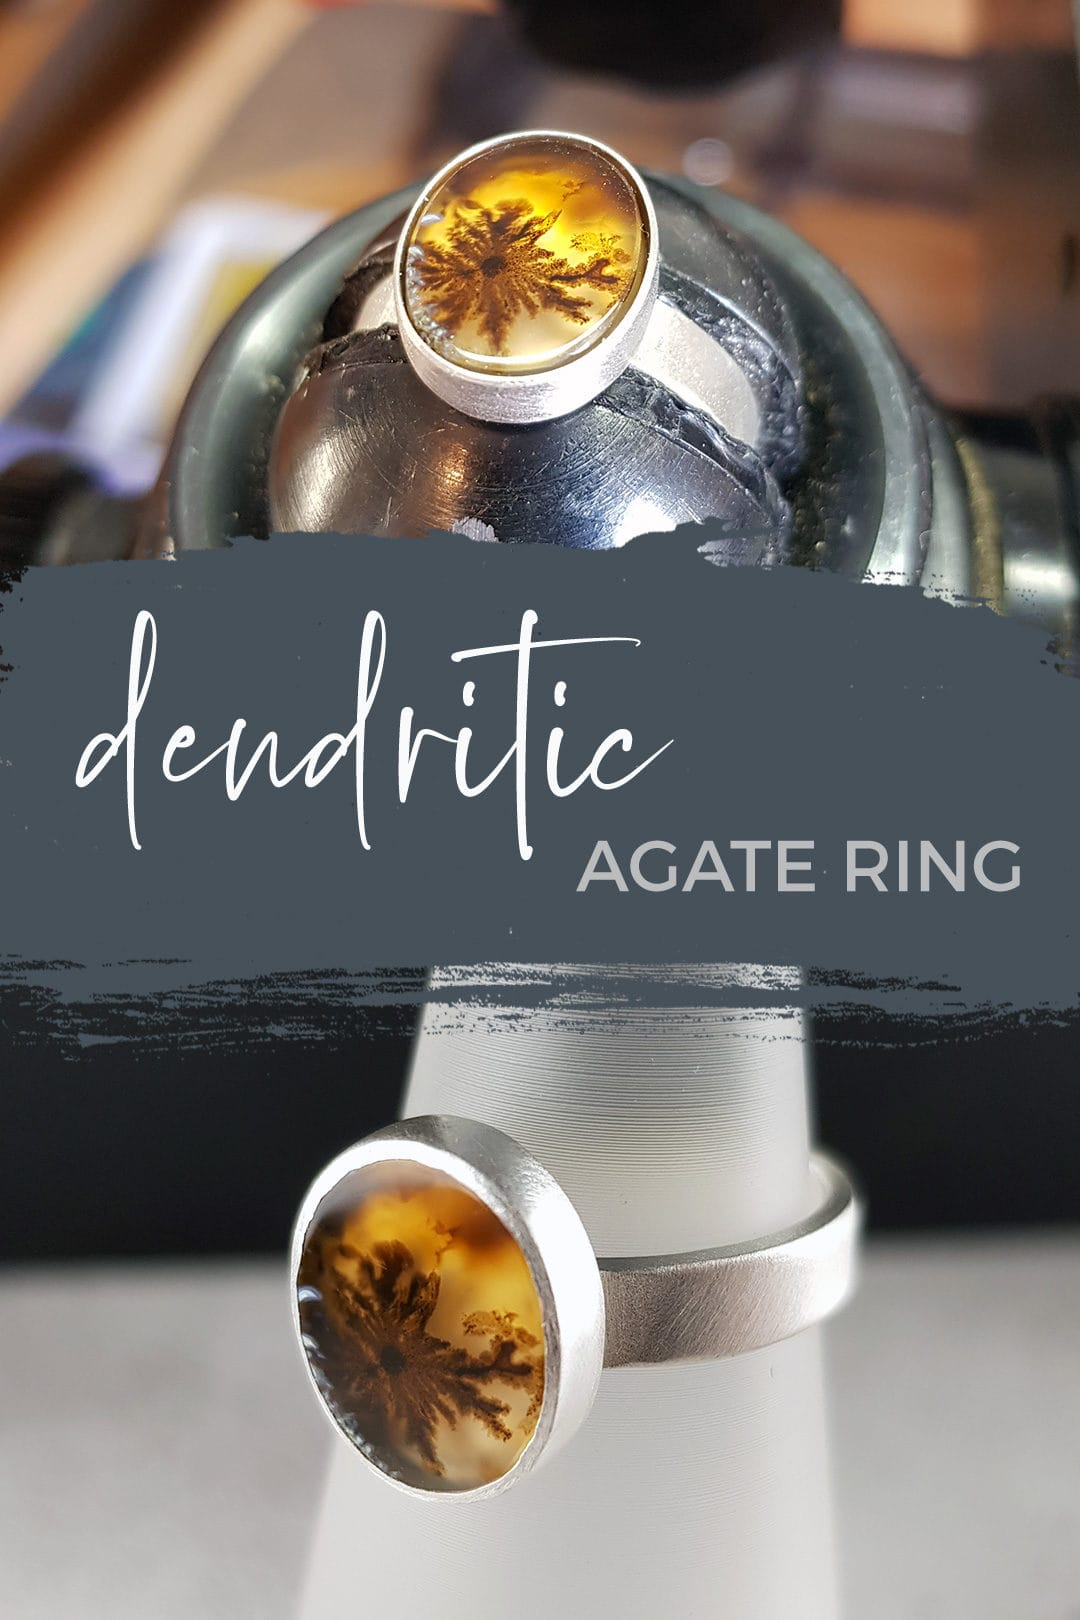 Dendritic agate and brushed silver ring commission made in Cornwall by Carin Lindberg